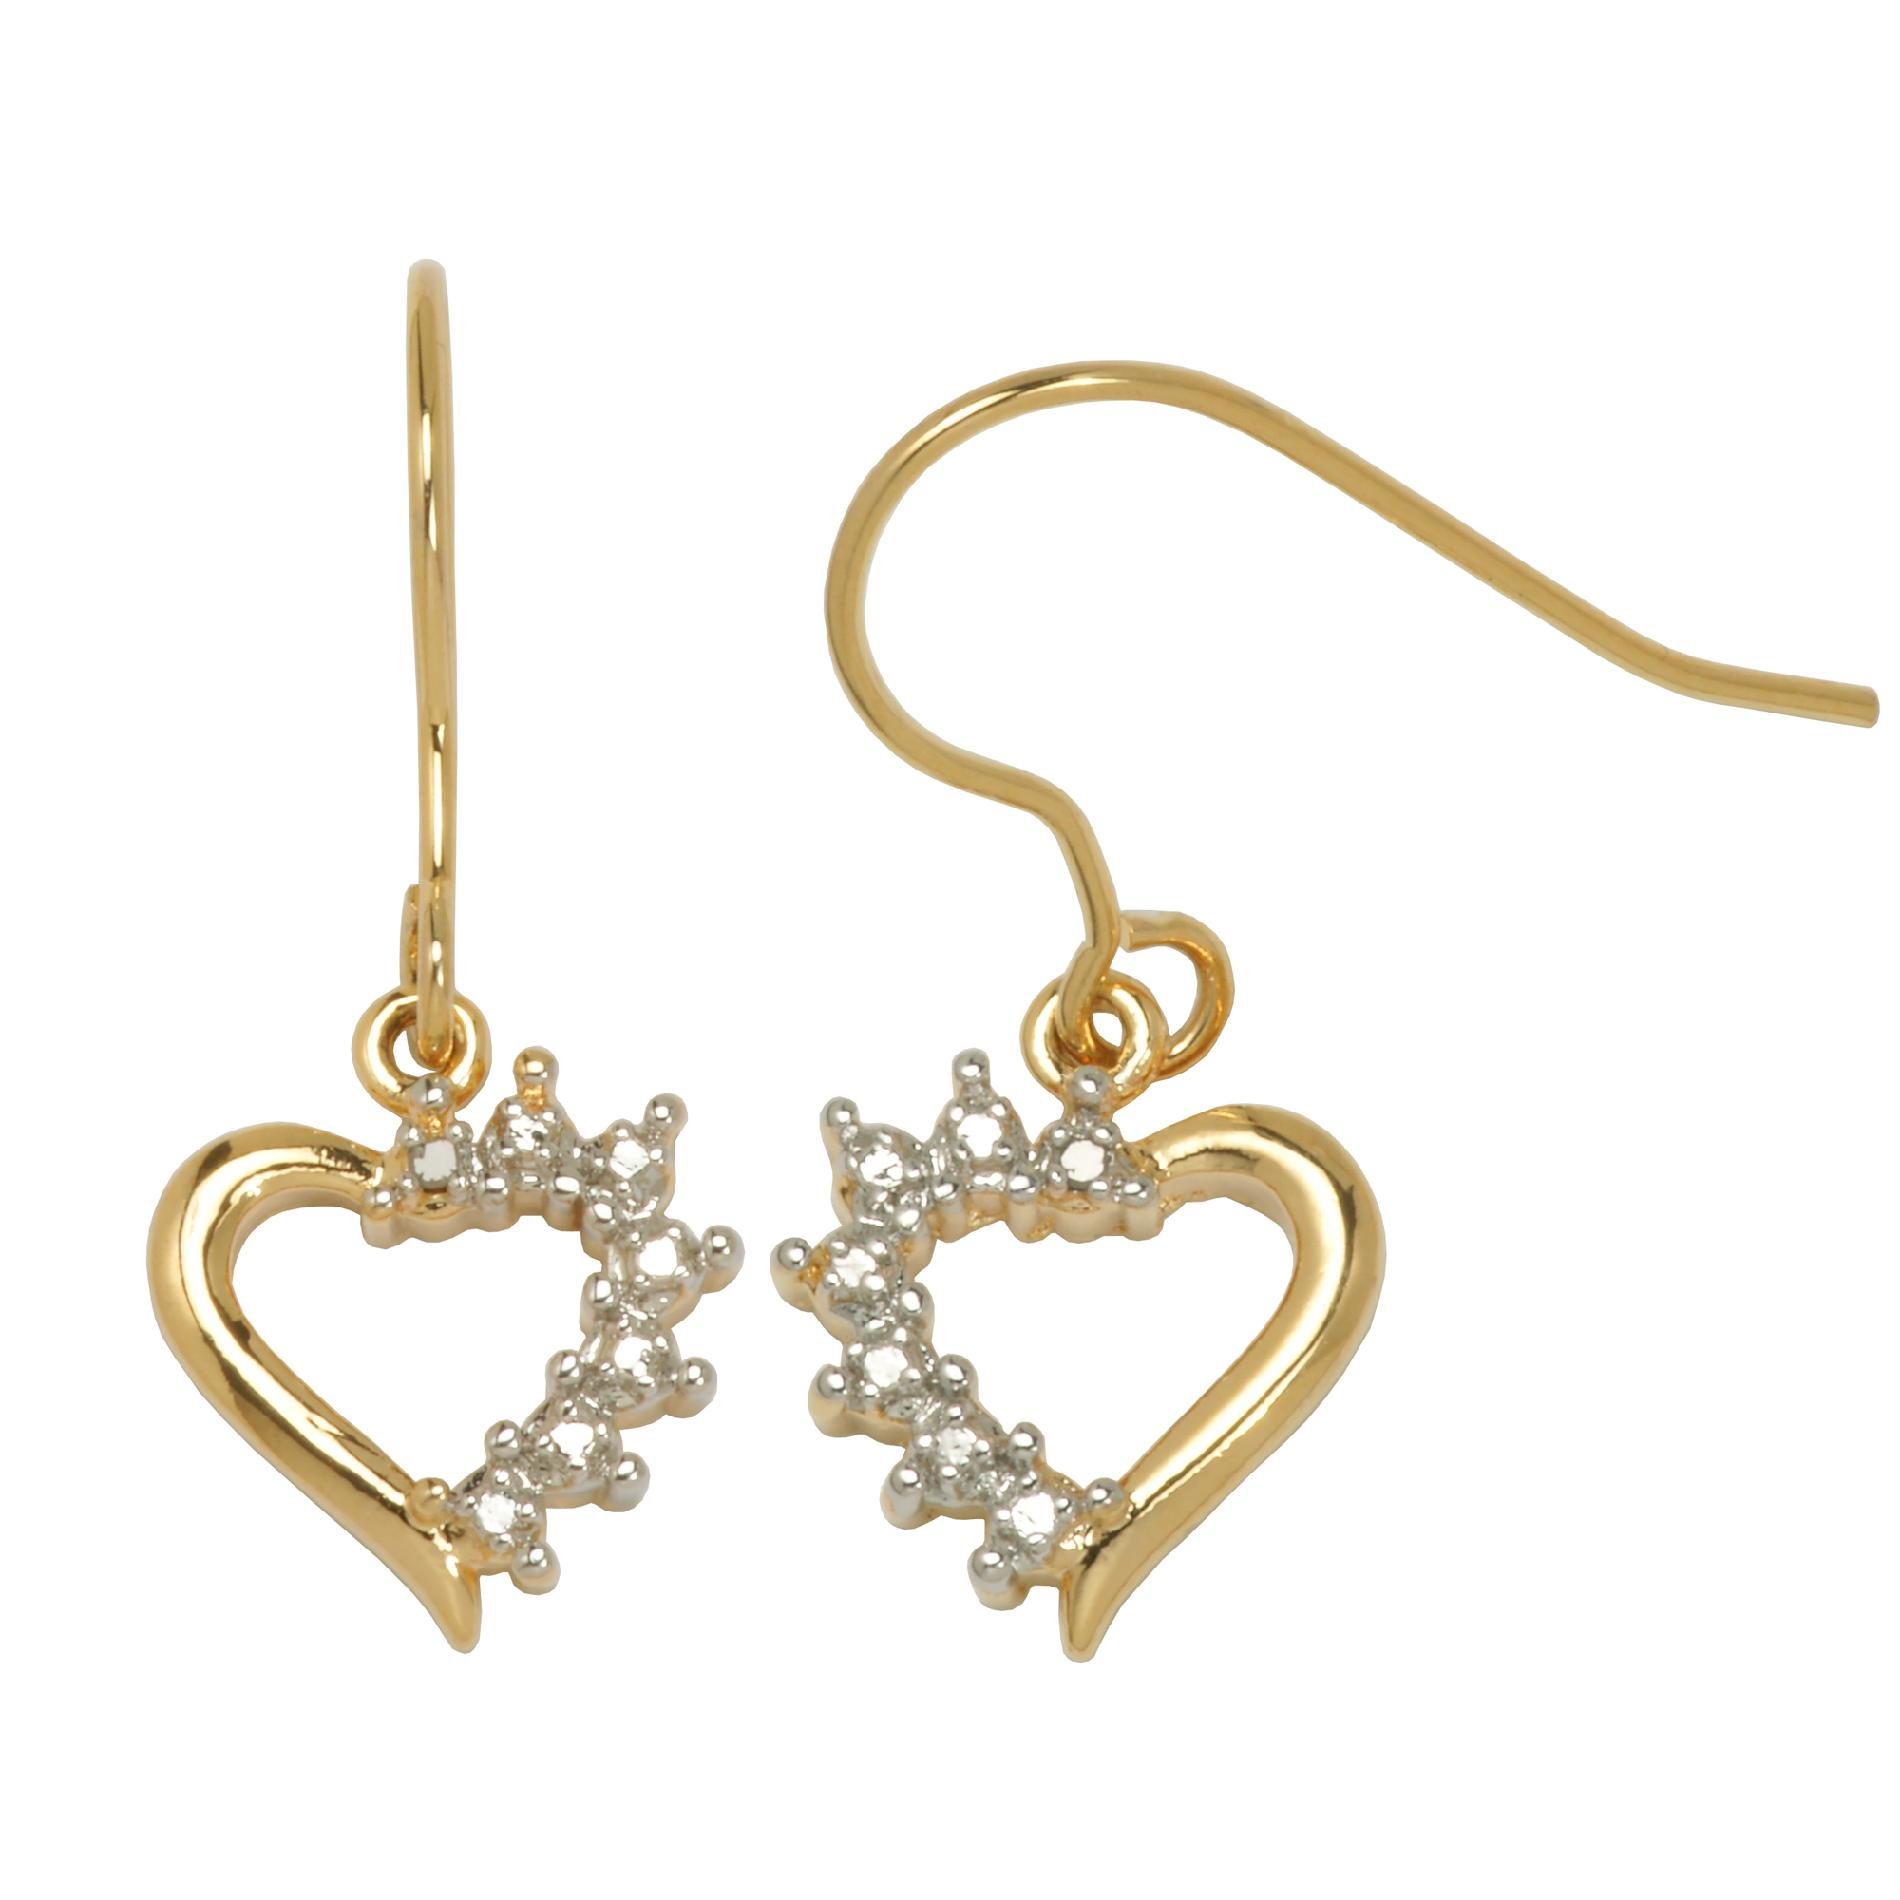 18K Gold Over Brass Diamond Accent Heart Dangle Earrings                                                                         at mygofer.com